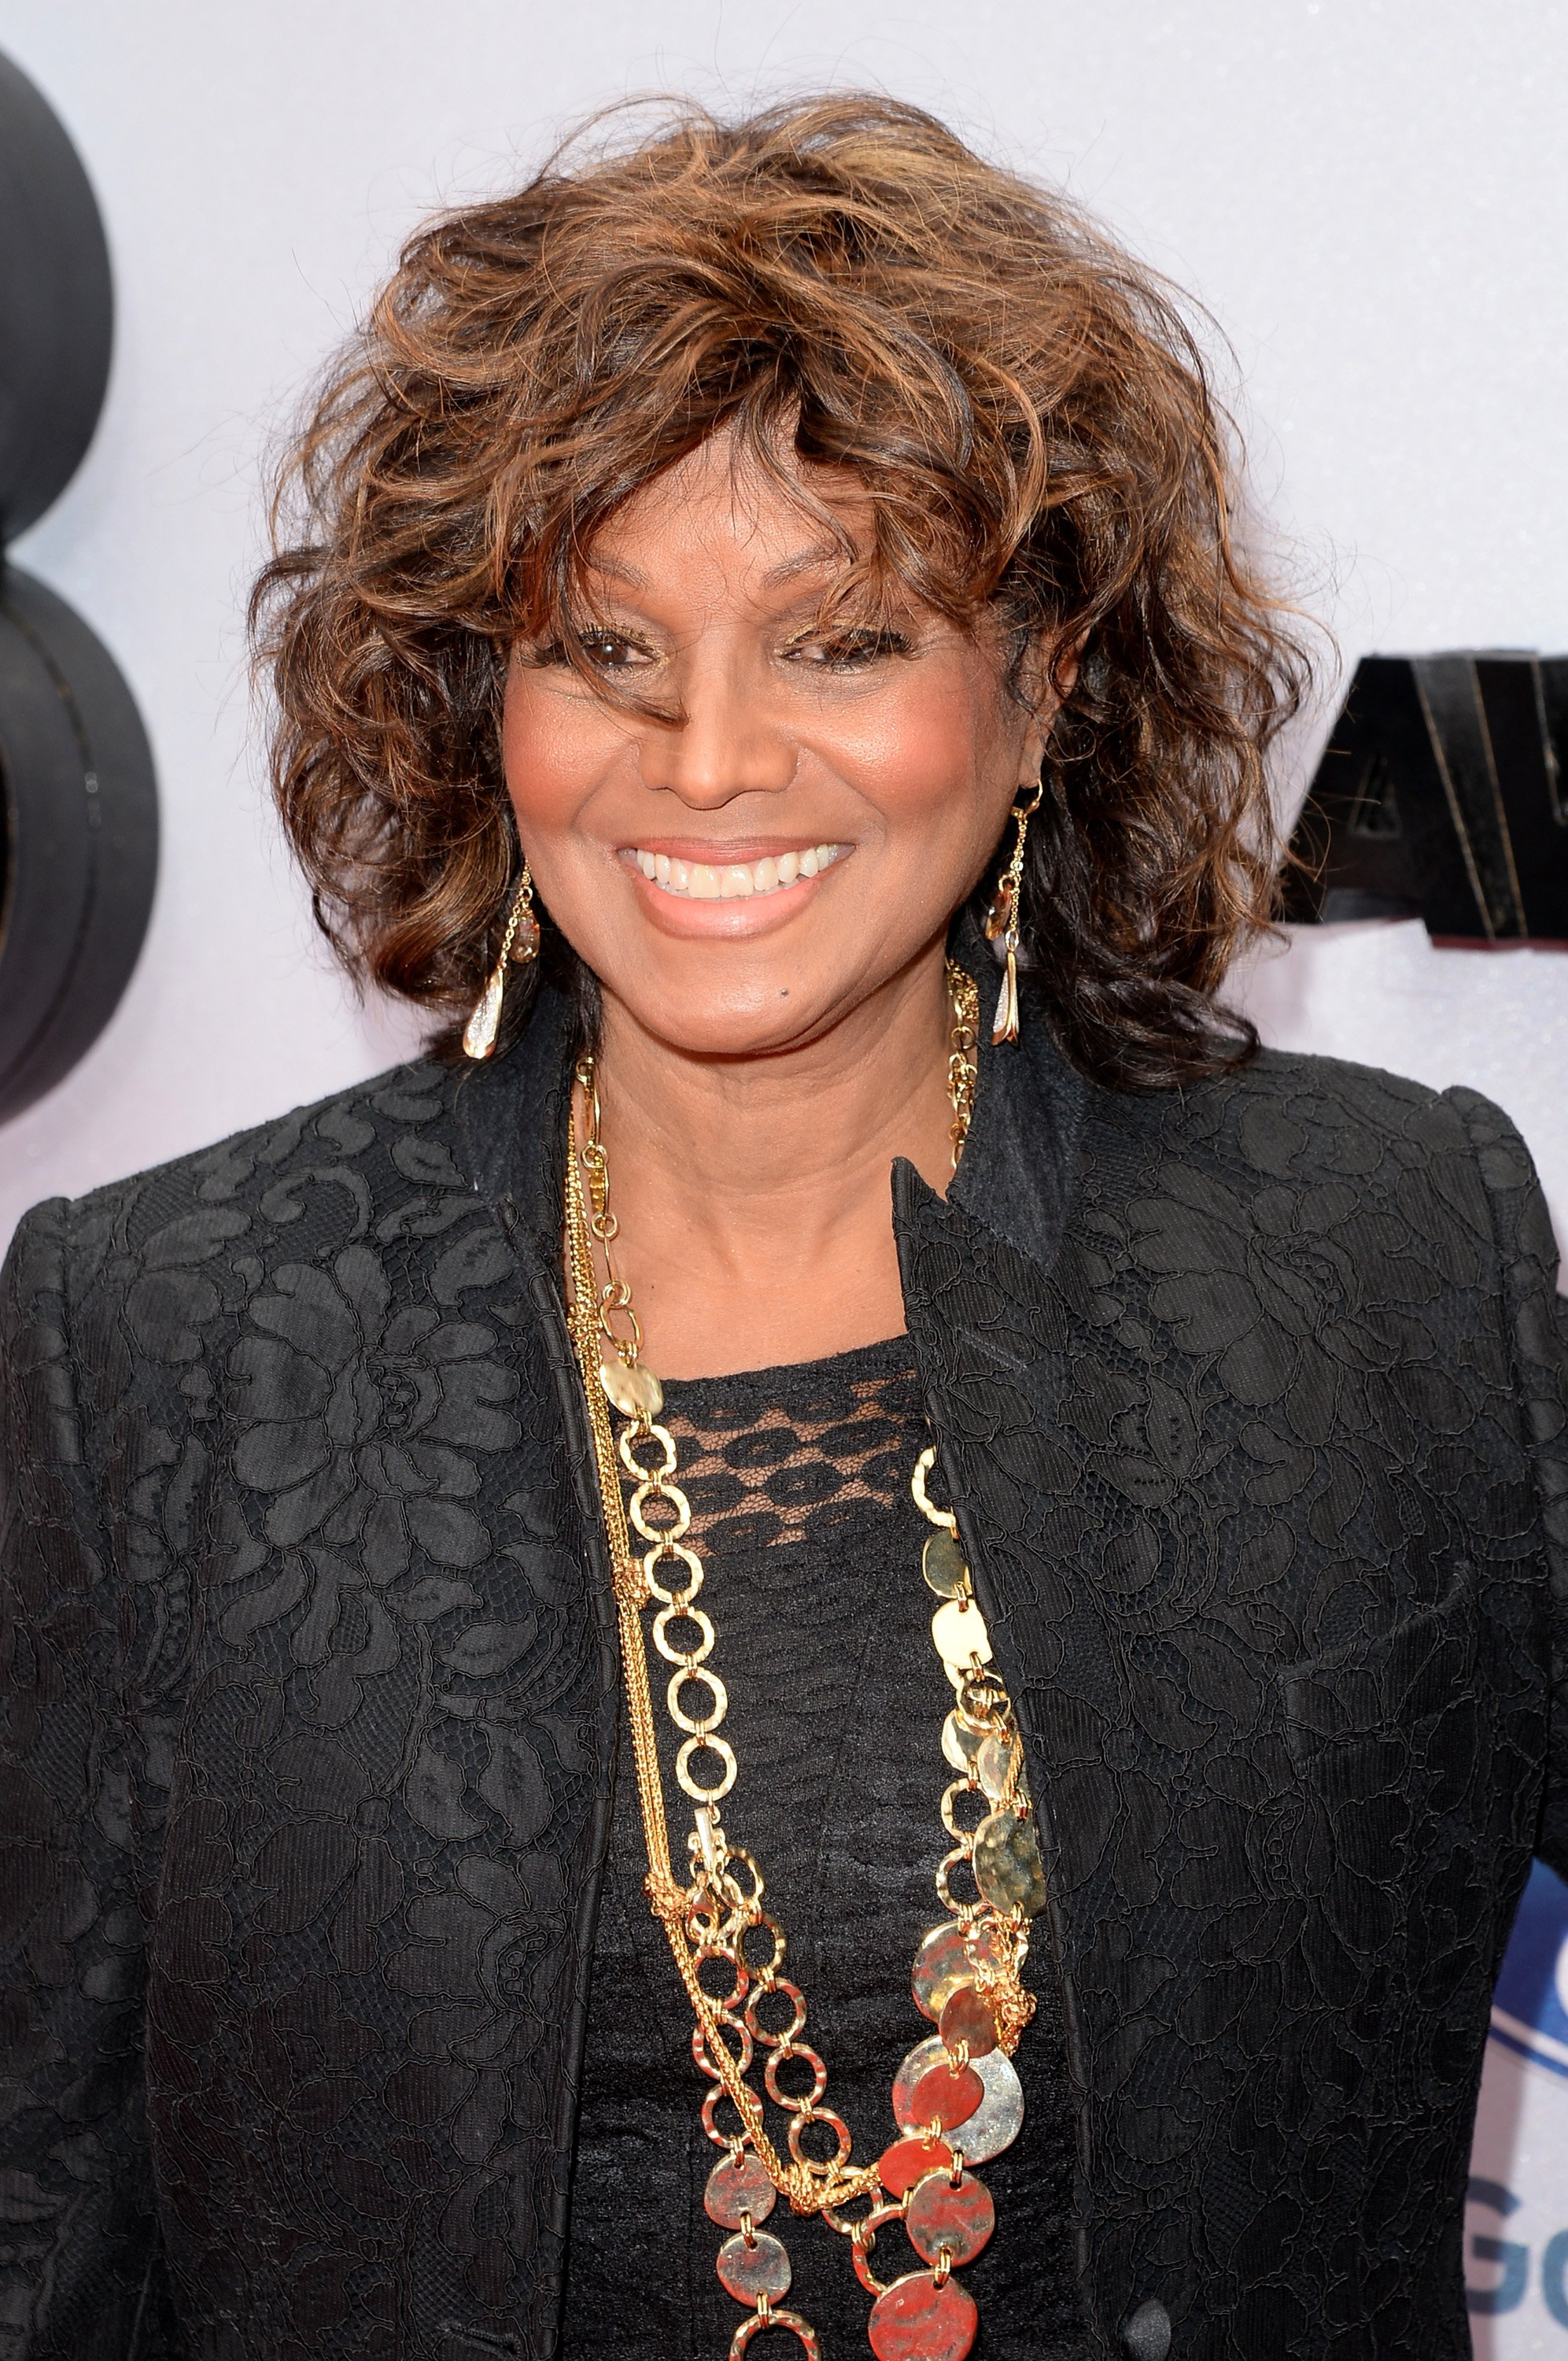 Rebbie Jacksojn at the 2013 BET Awards in Los Angeles in June 2013. | Photo: Getty Images